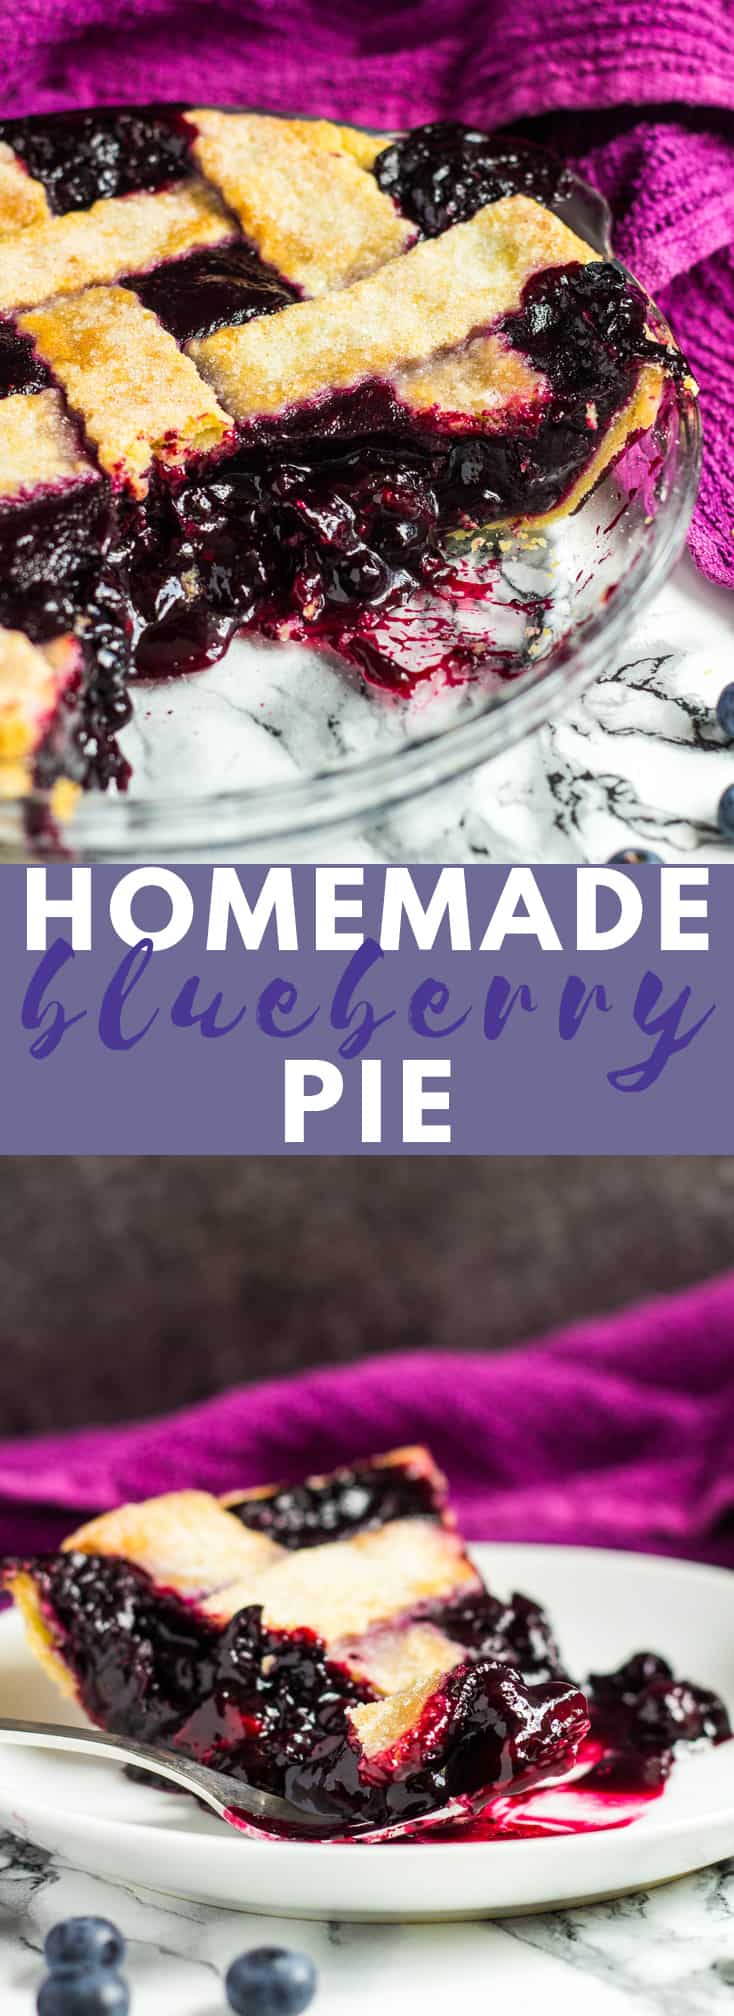 Homemade Blueberry Pie - A deliciously flaky, all-butter pie crust filled with a sweet, homemade blueberry filling!